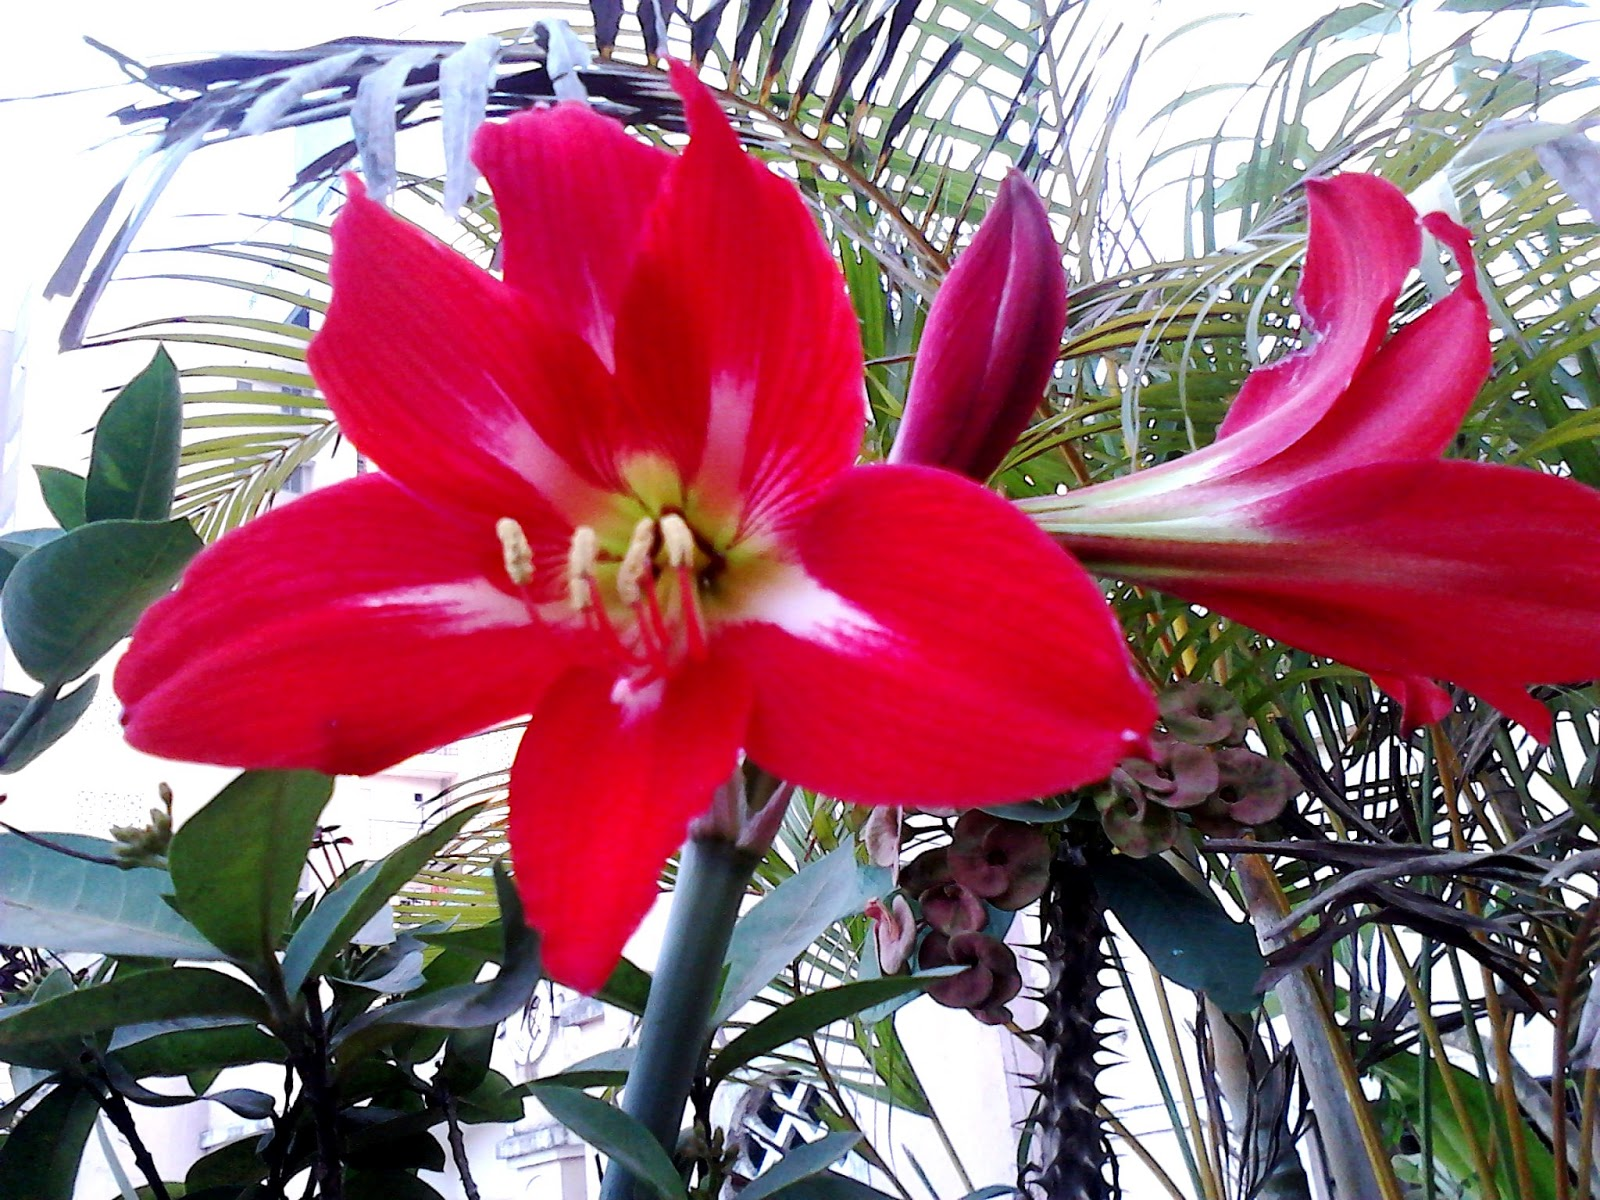 Garden care simplified big amaryllis red lily flowering plant tips big red flowers of lily photo by mrs rizwana andewadi izmirmasajfo